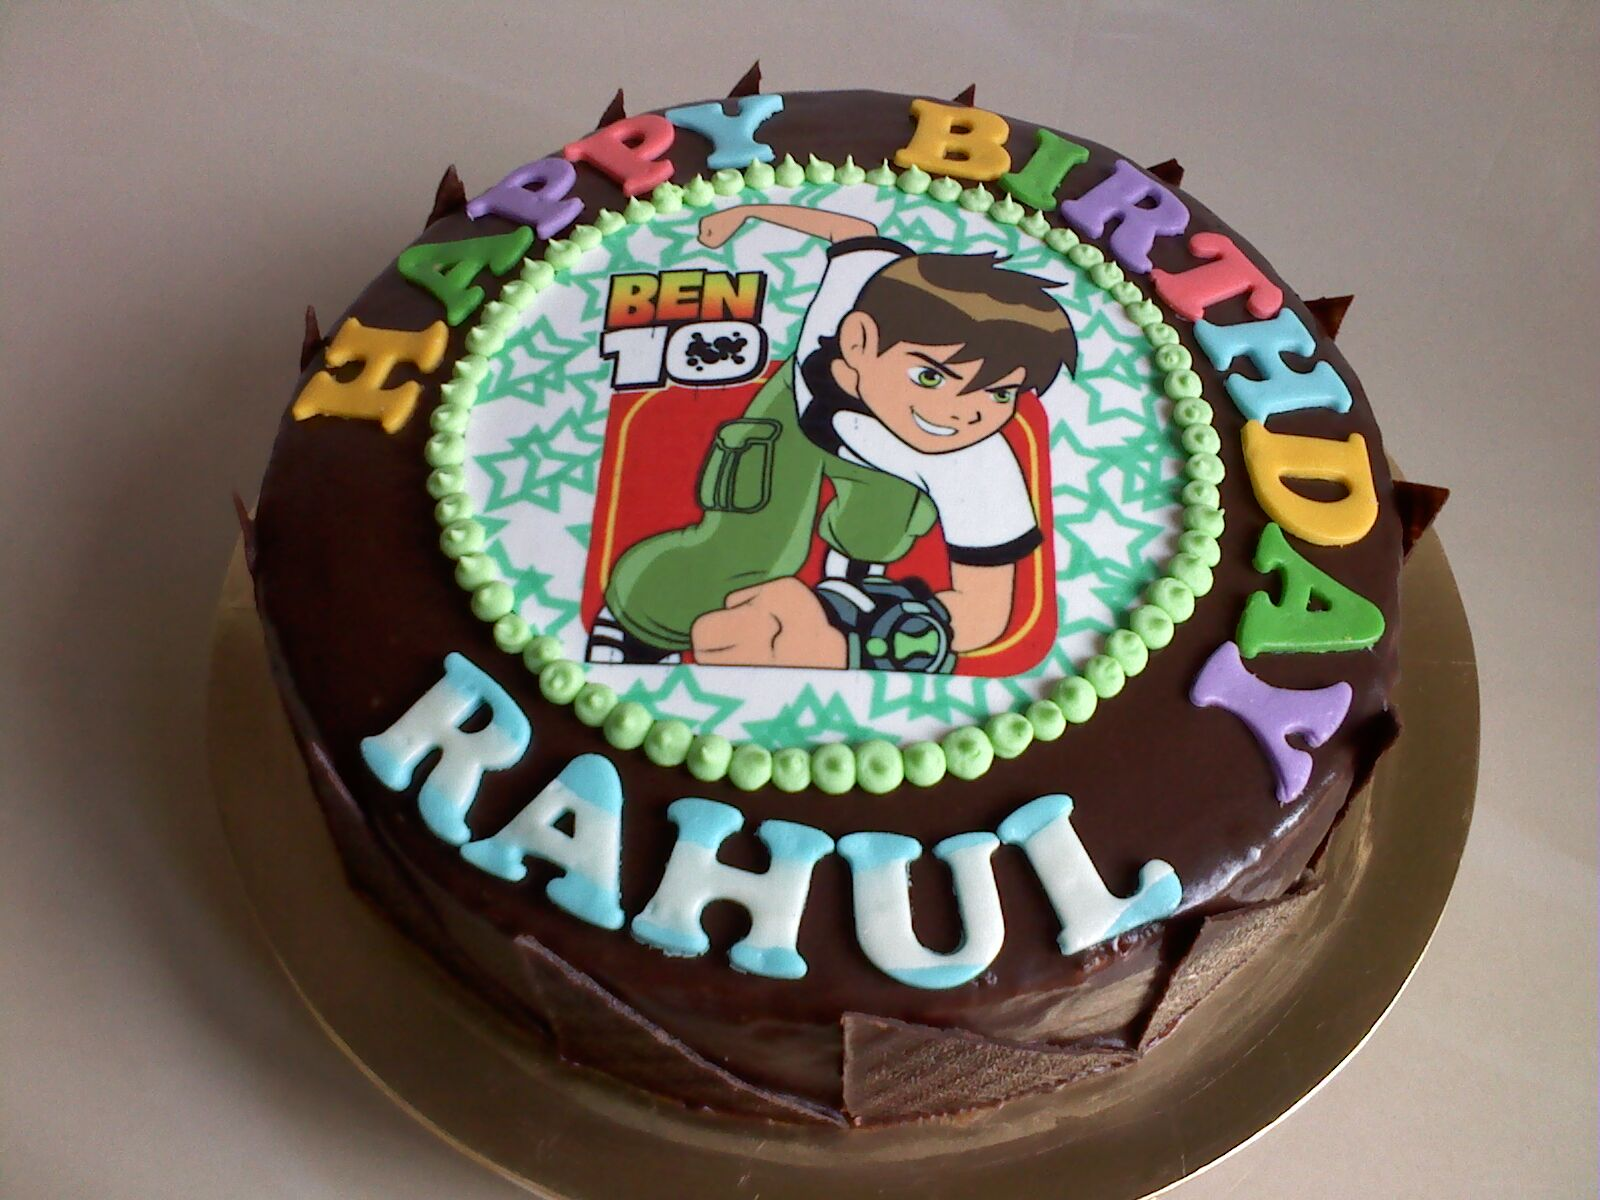 Cake Images With Rahul Name : Pin Rahul Mishra Designer Cake on Pinterest